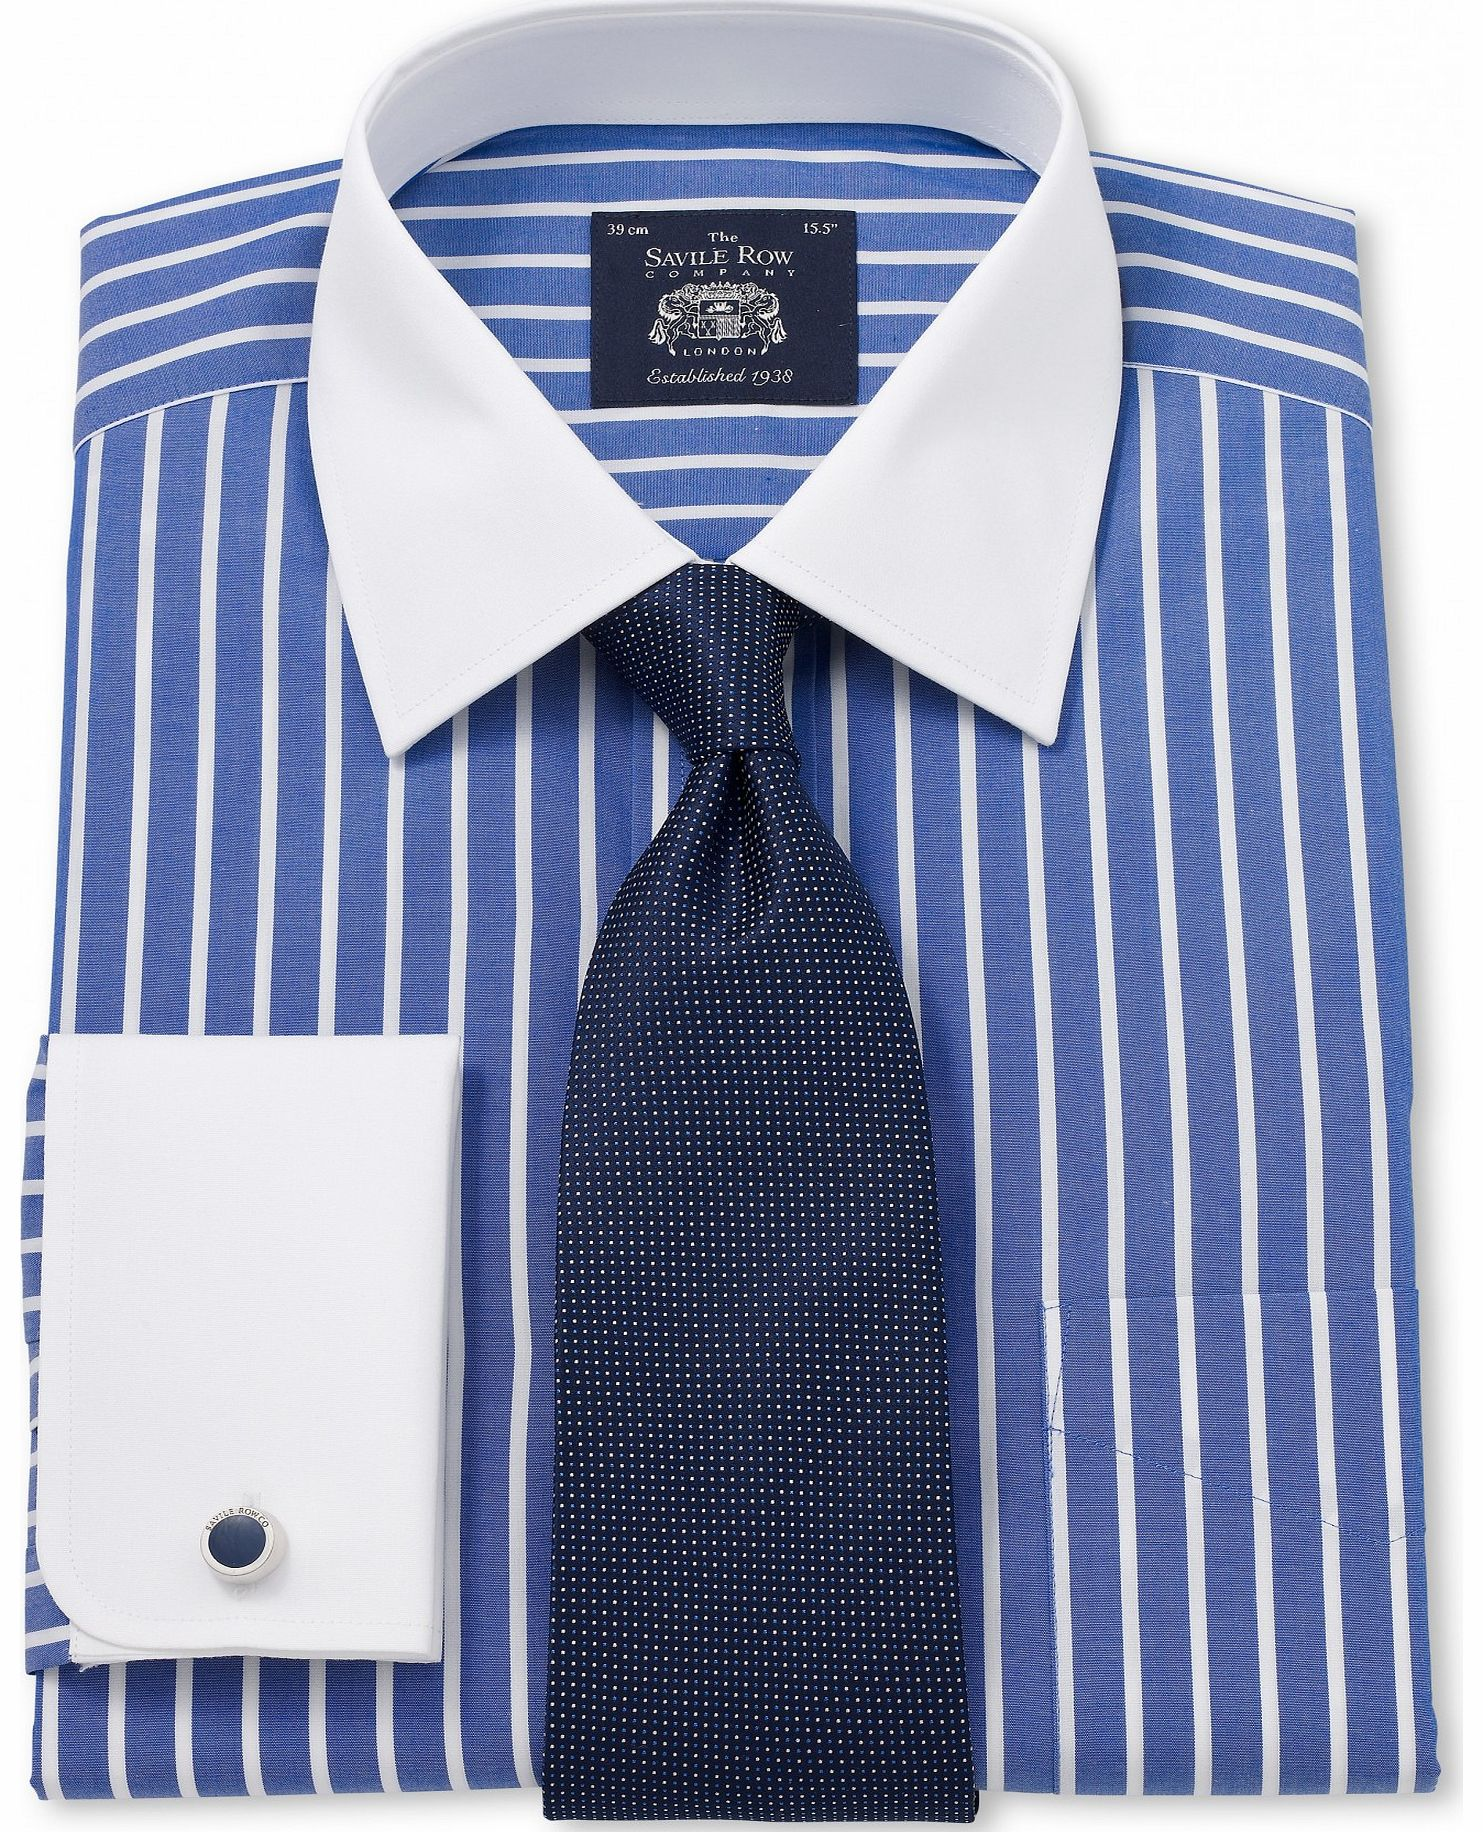 Blue white collar and cuff shirt for Blue and white striped shirt with white collar